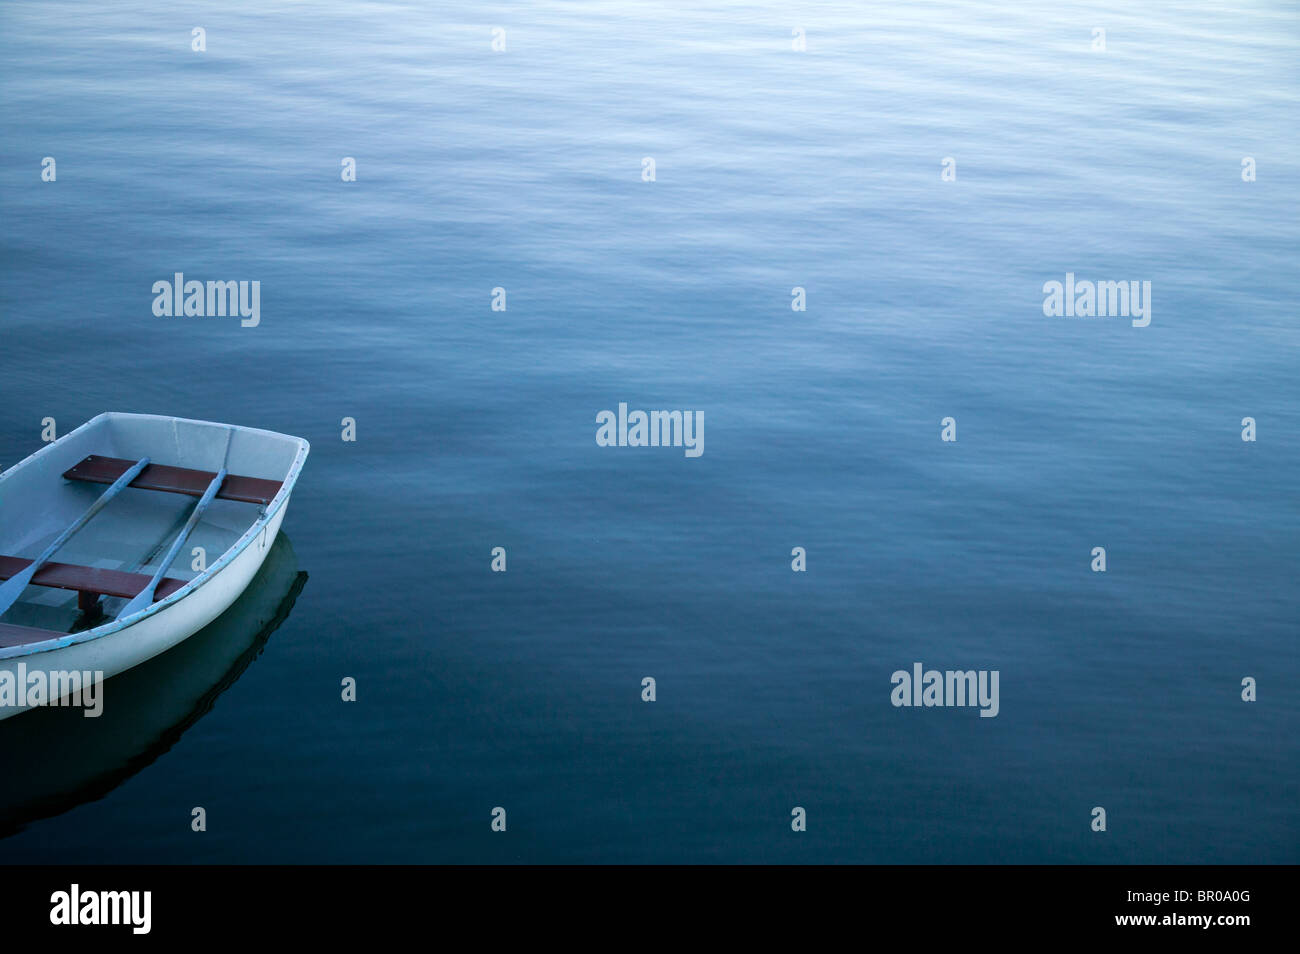 row boat in calm water - Stock Image